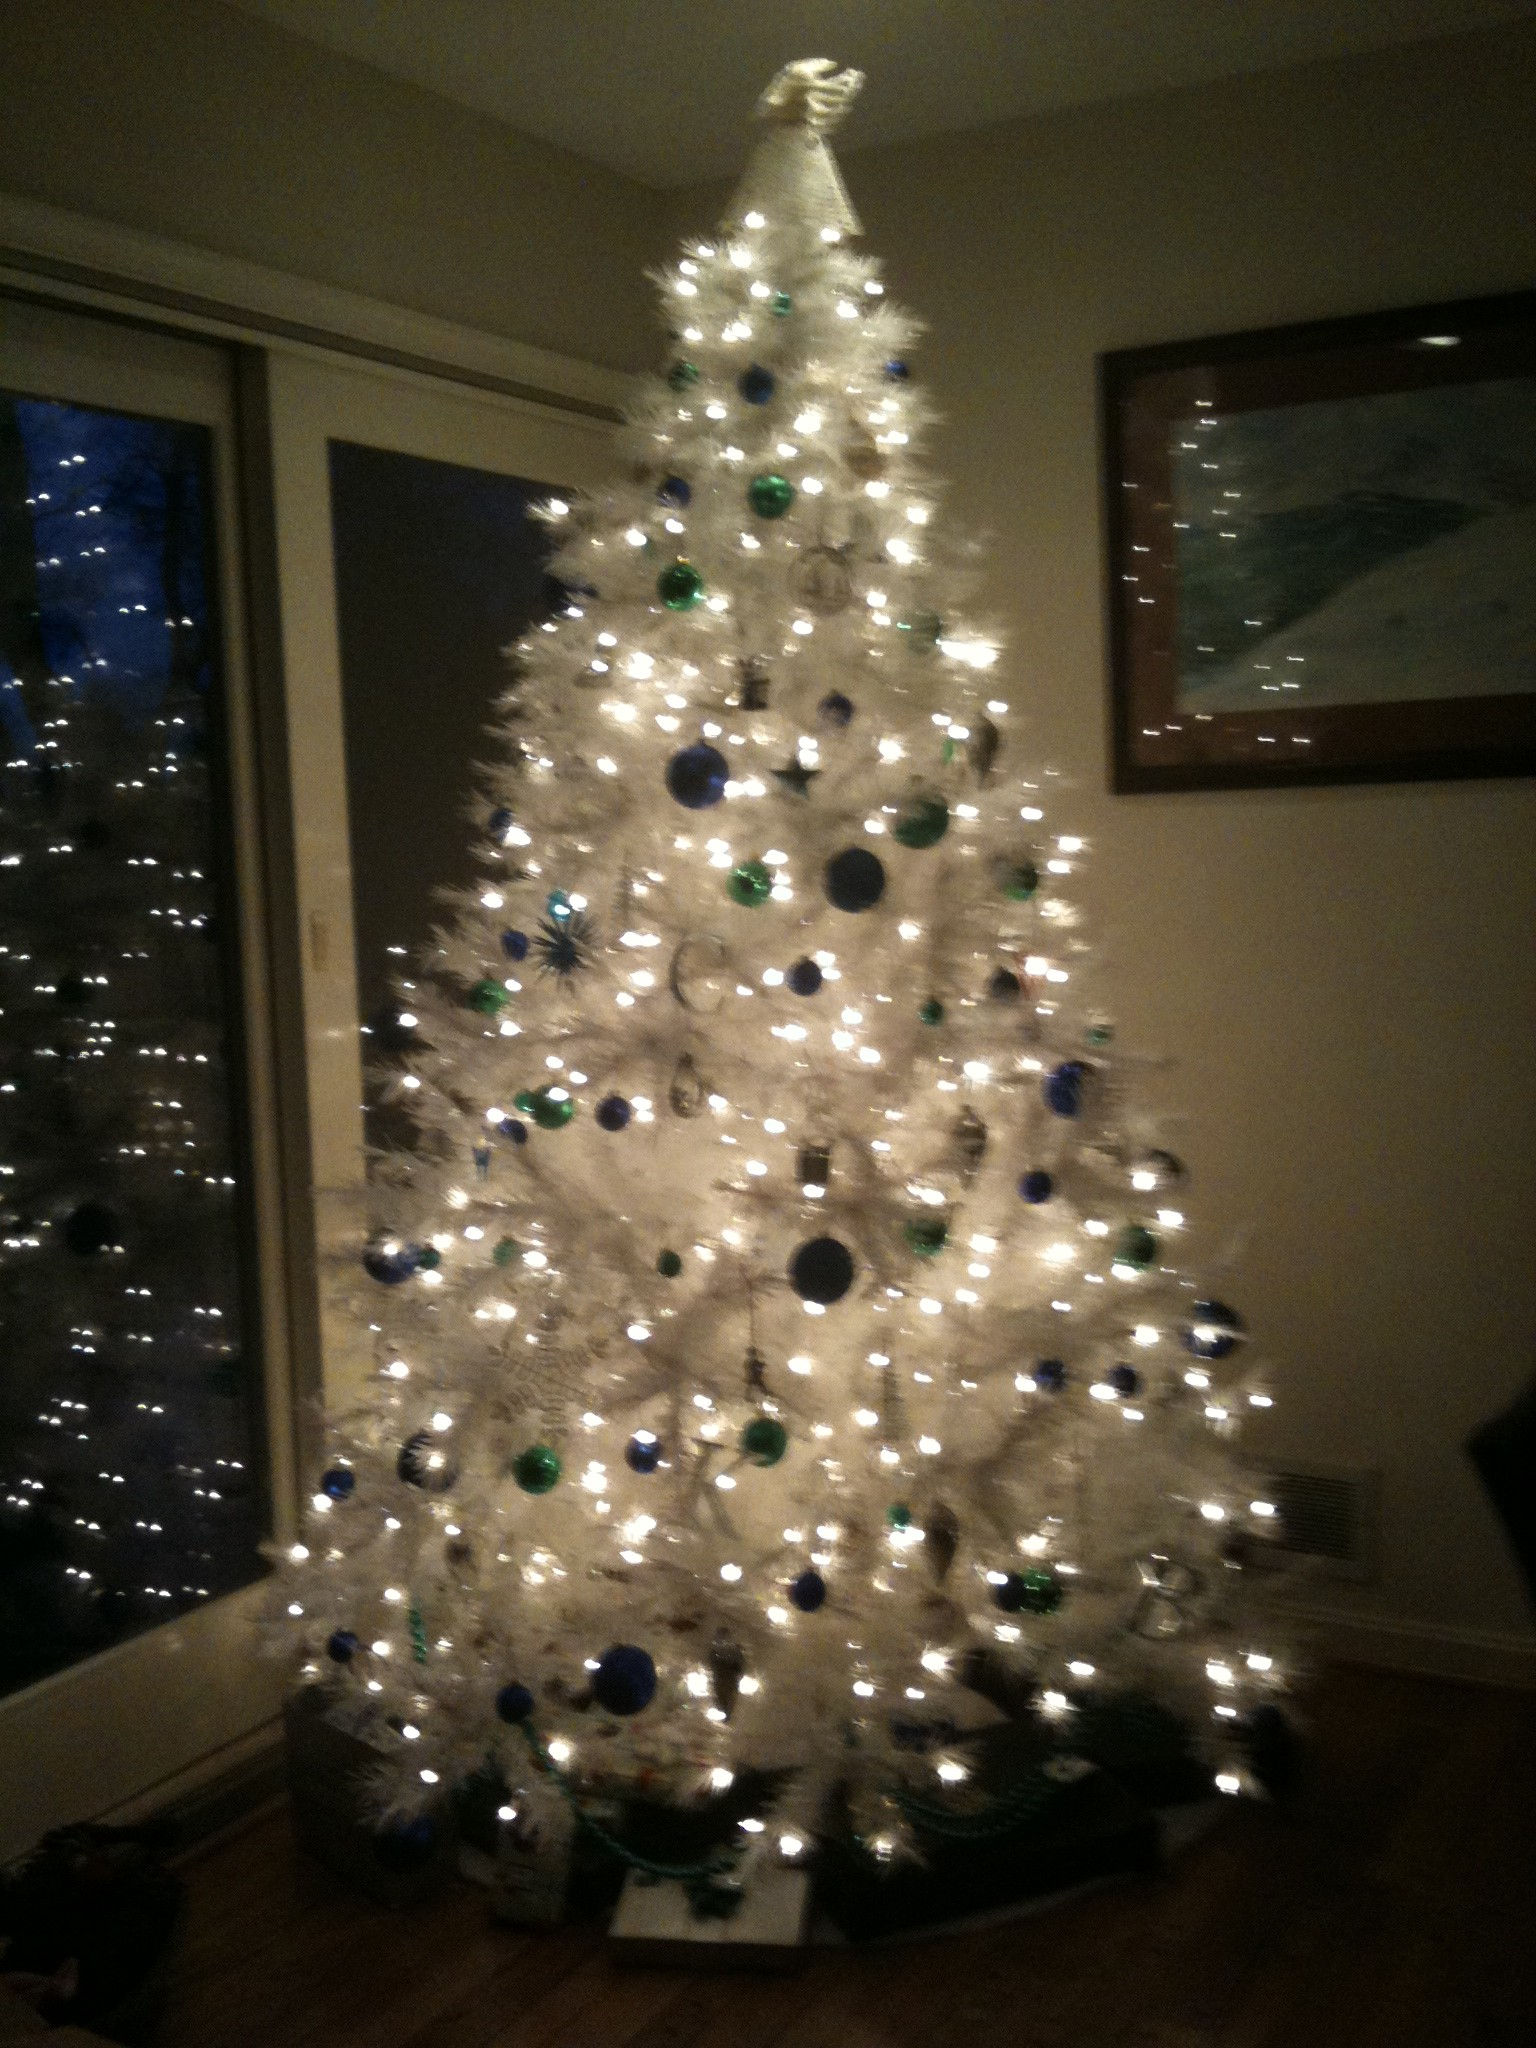 White christmas tree with blue and green decorations - photo#16